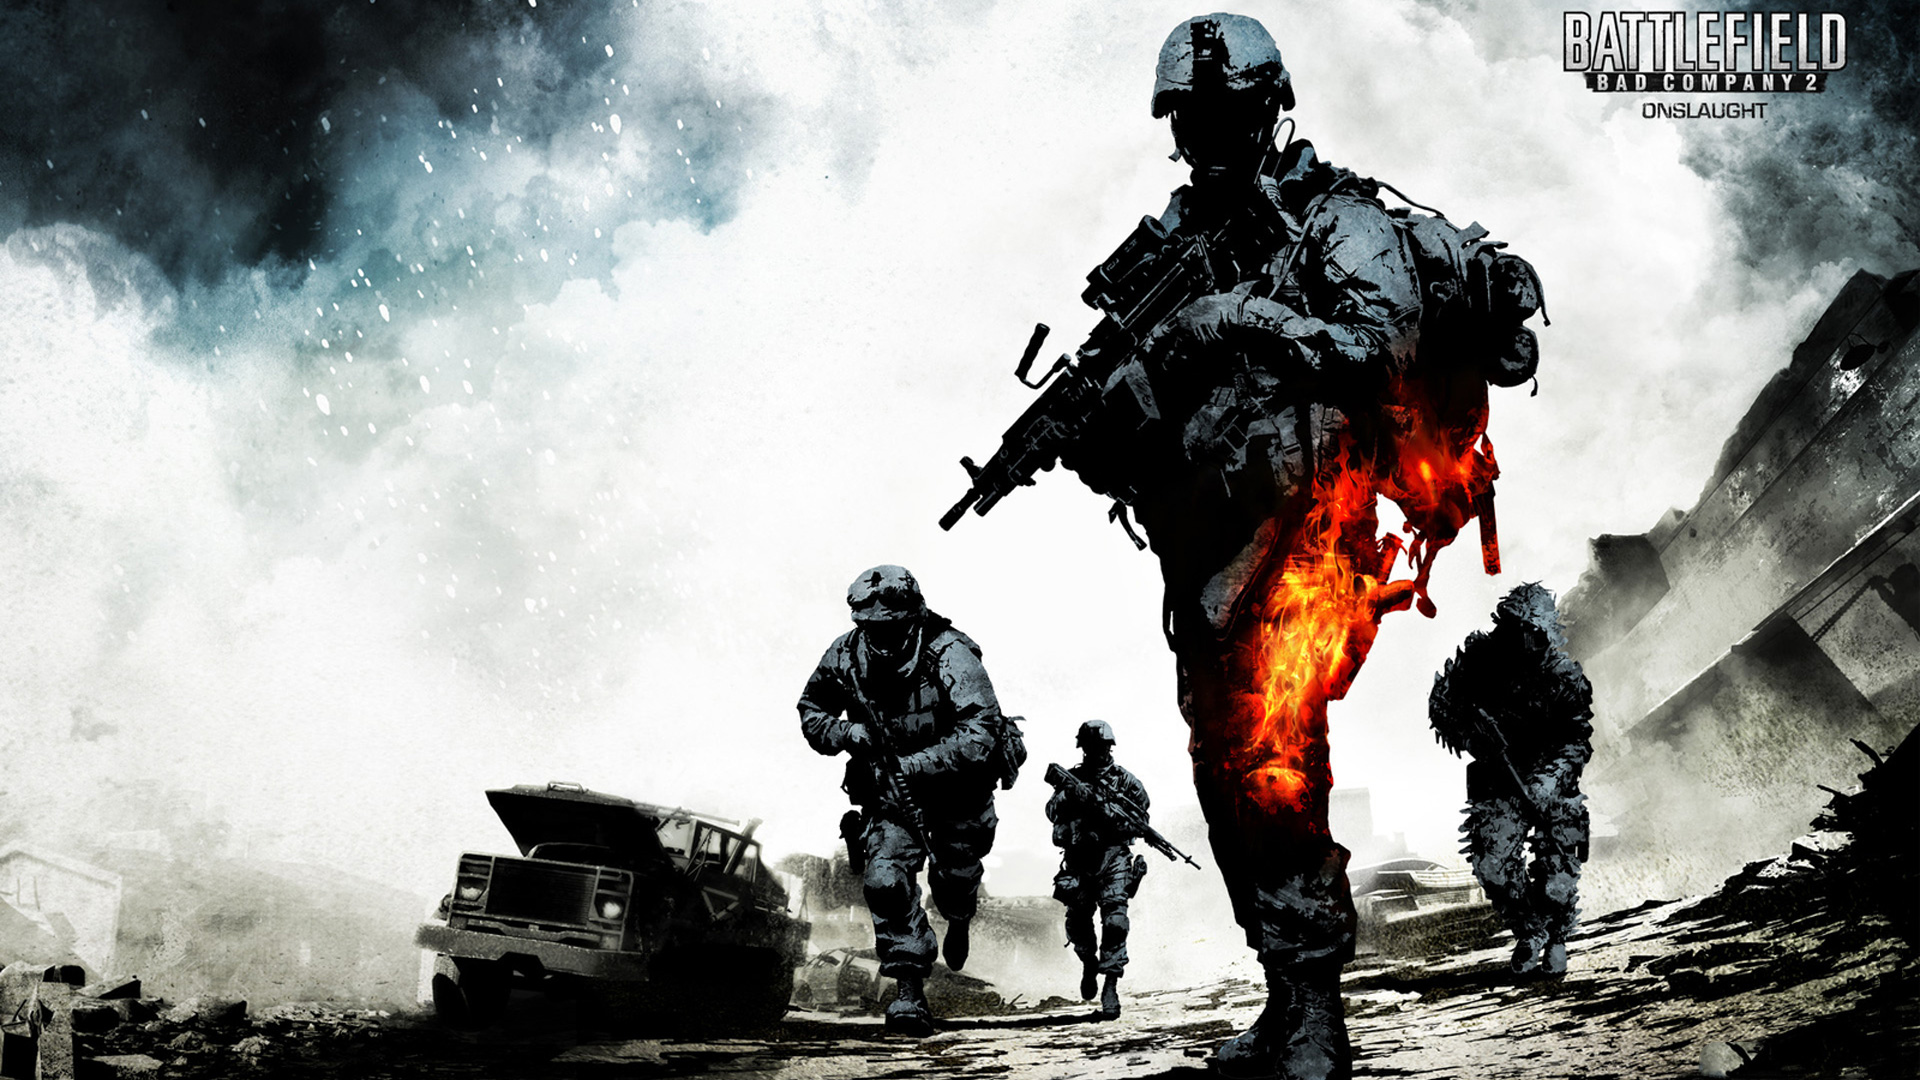 Battlefield Bad Company 2 wallpaper 3